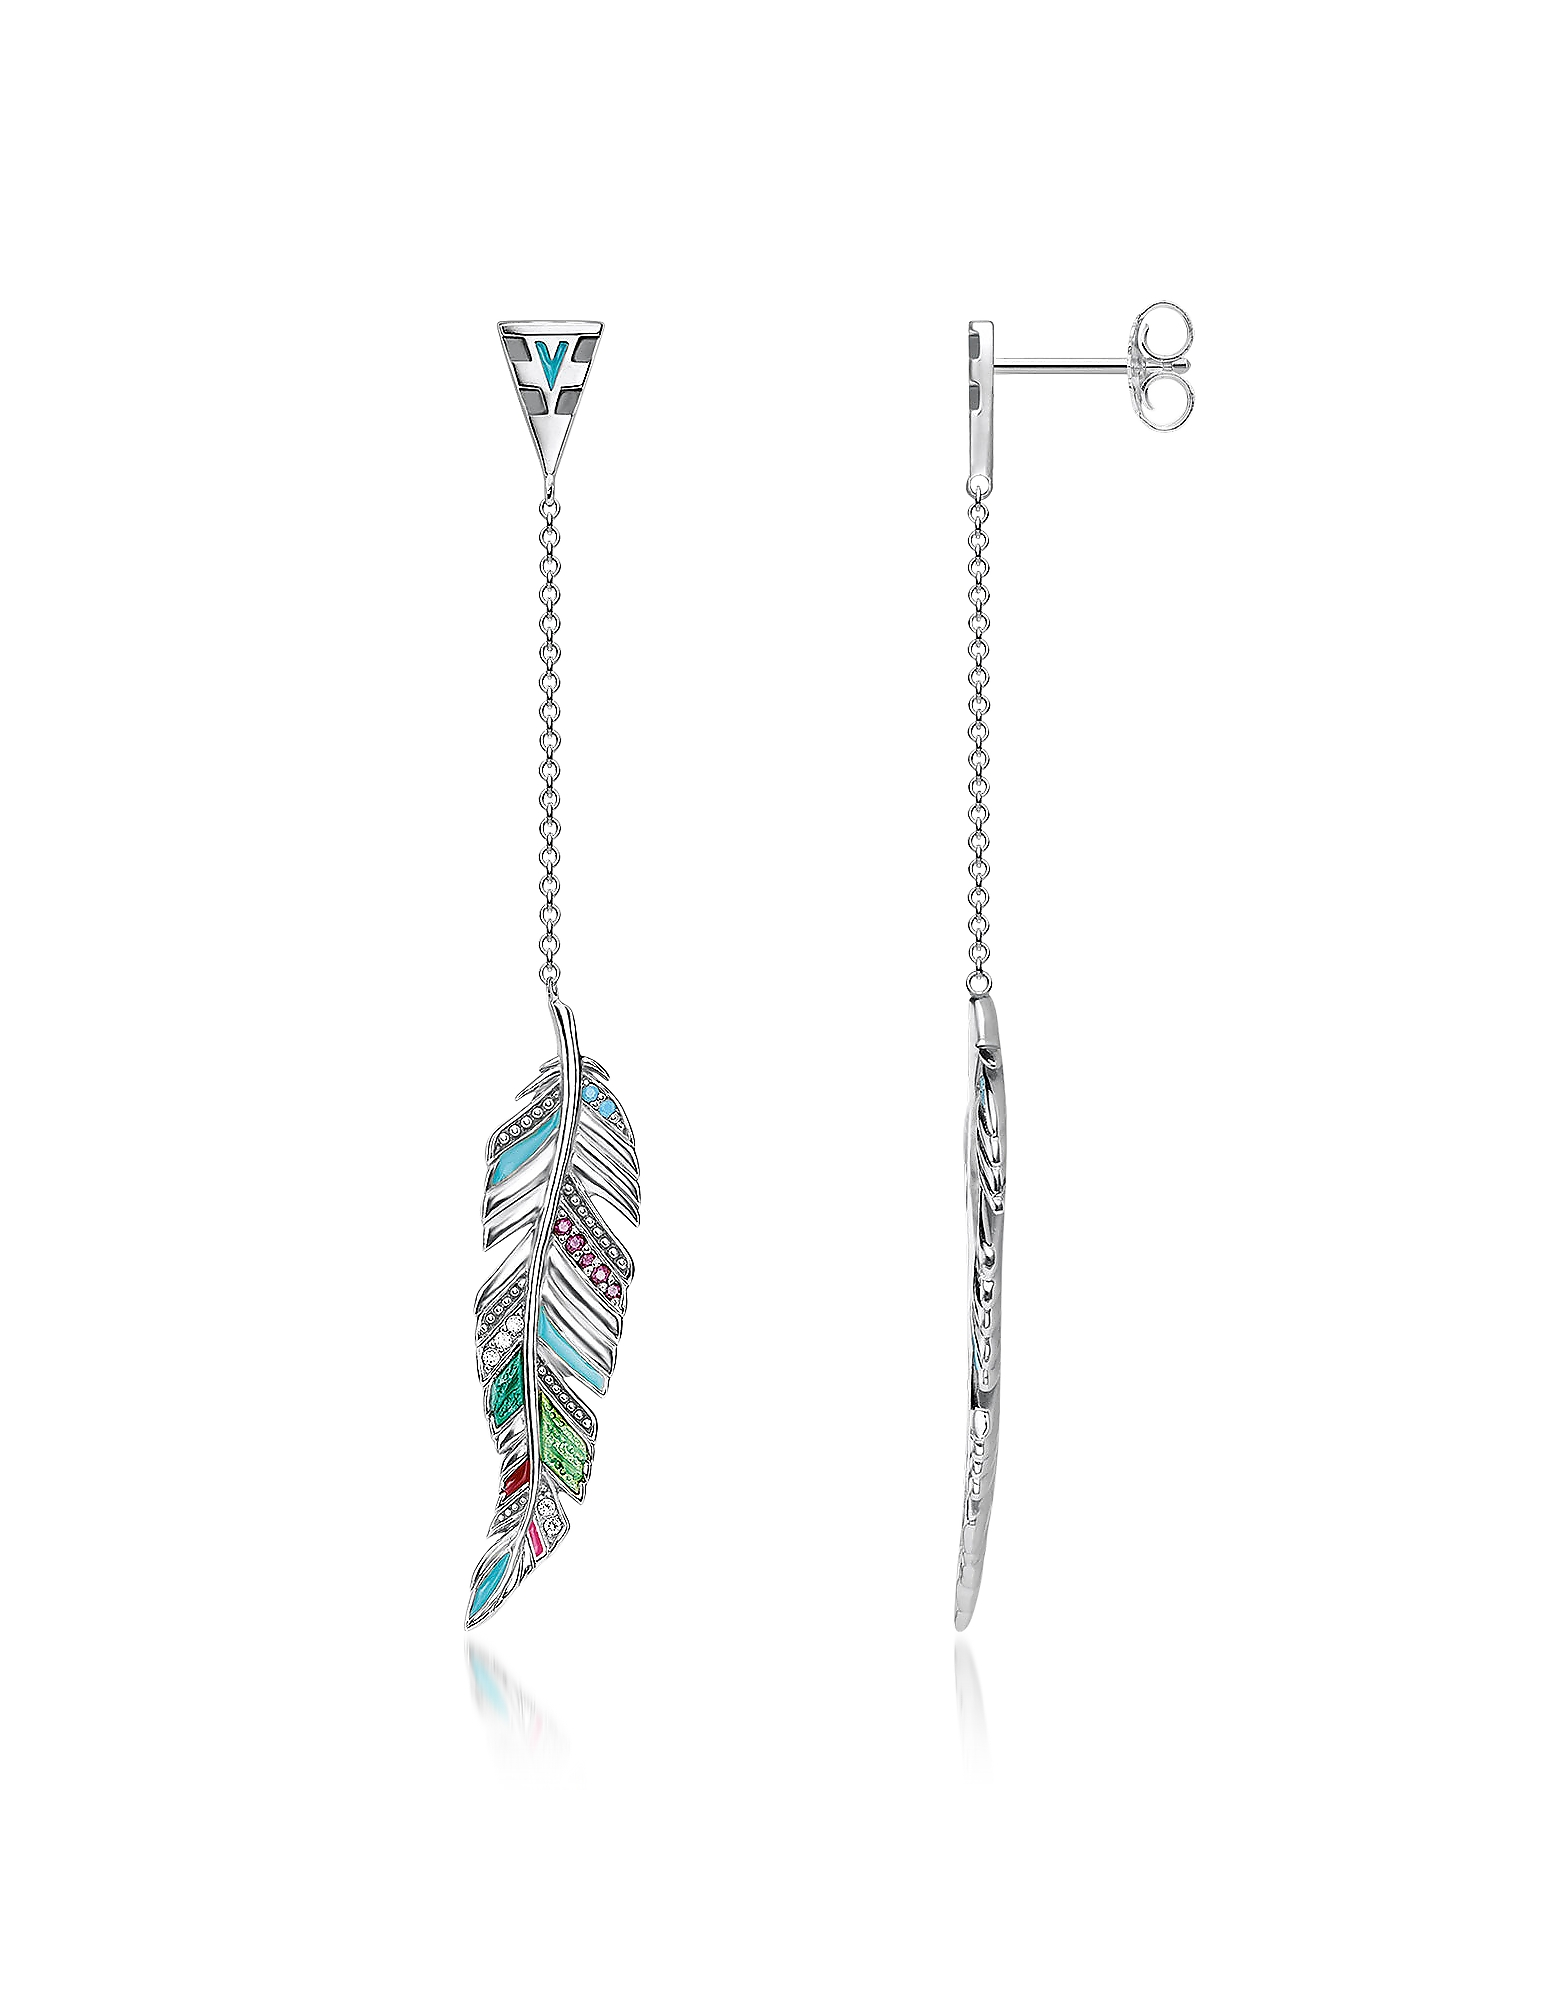 Blackened Sterling Silver, Enamel and Glass-ceramic Stones Feathers Long Earrings